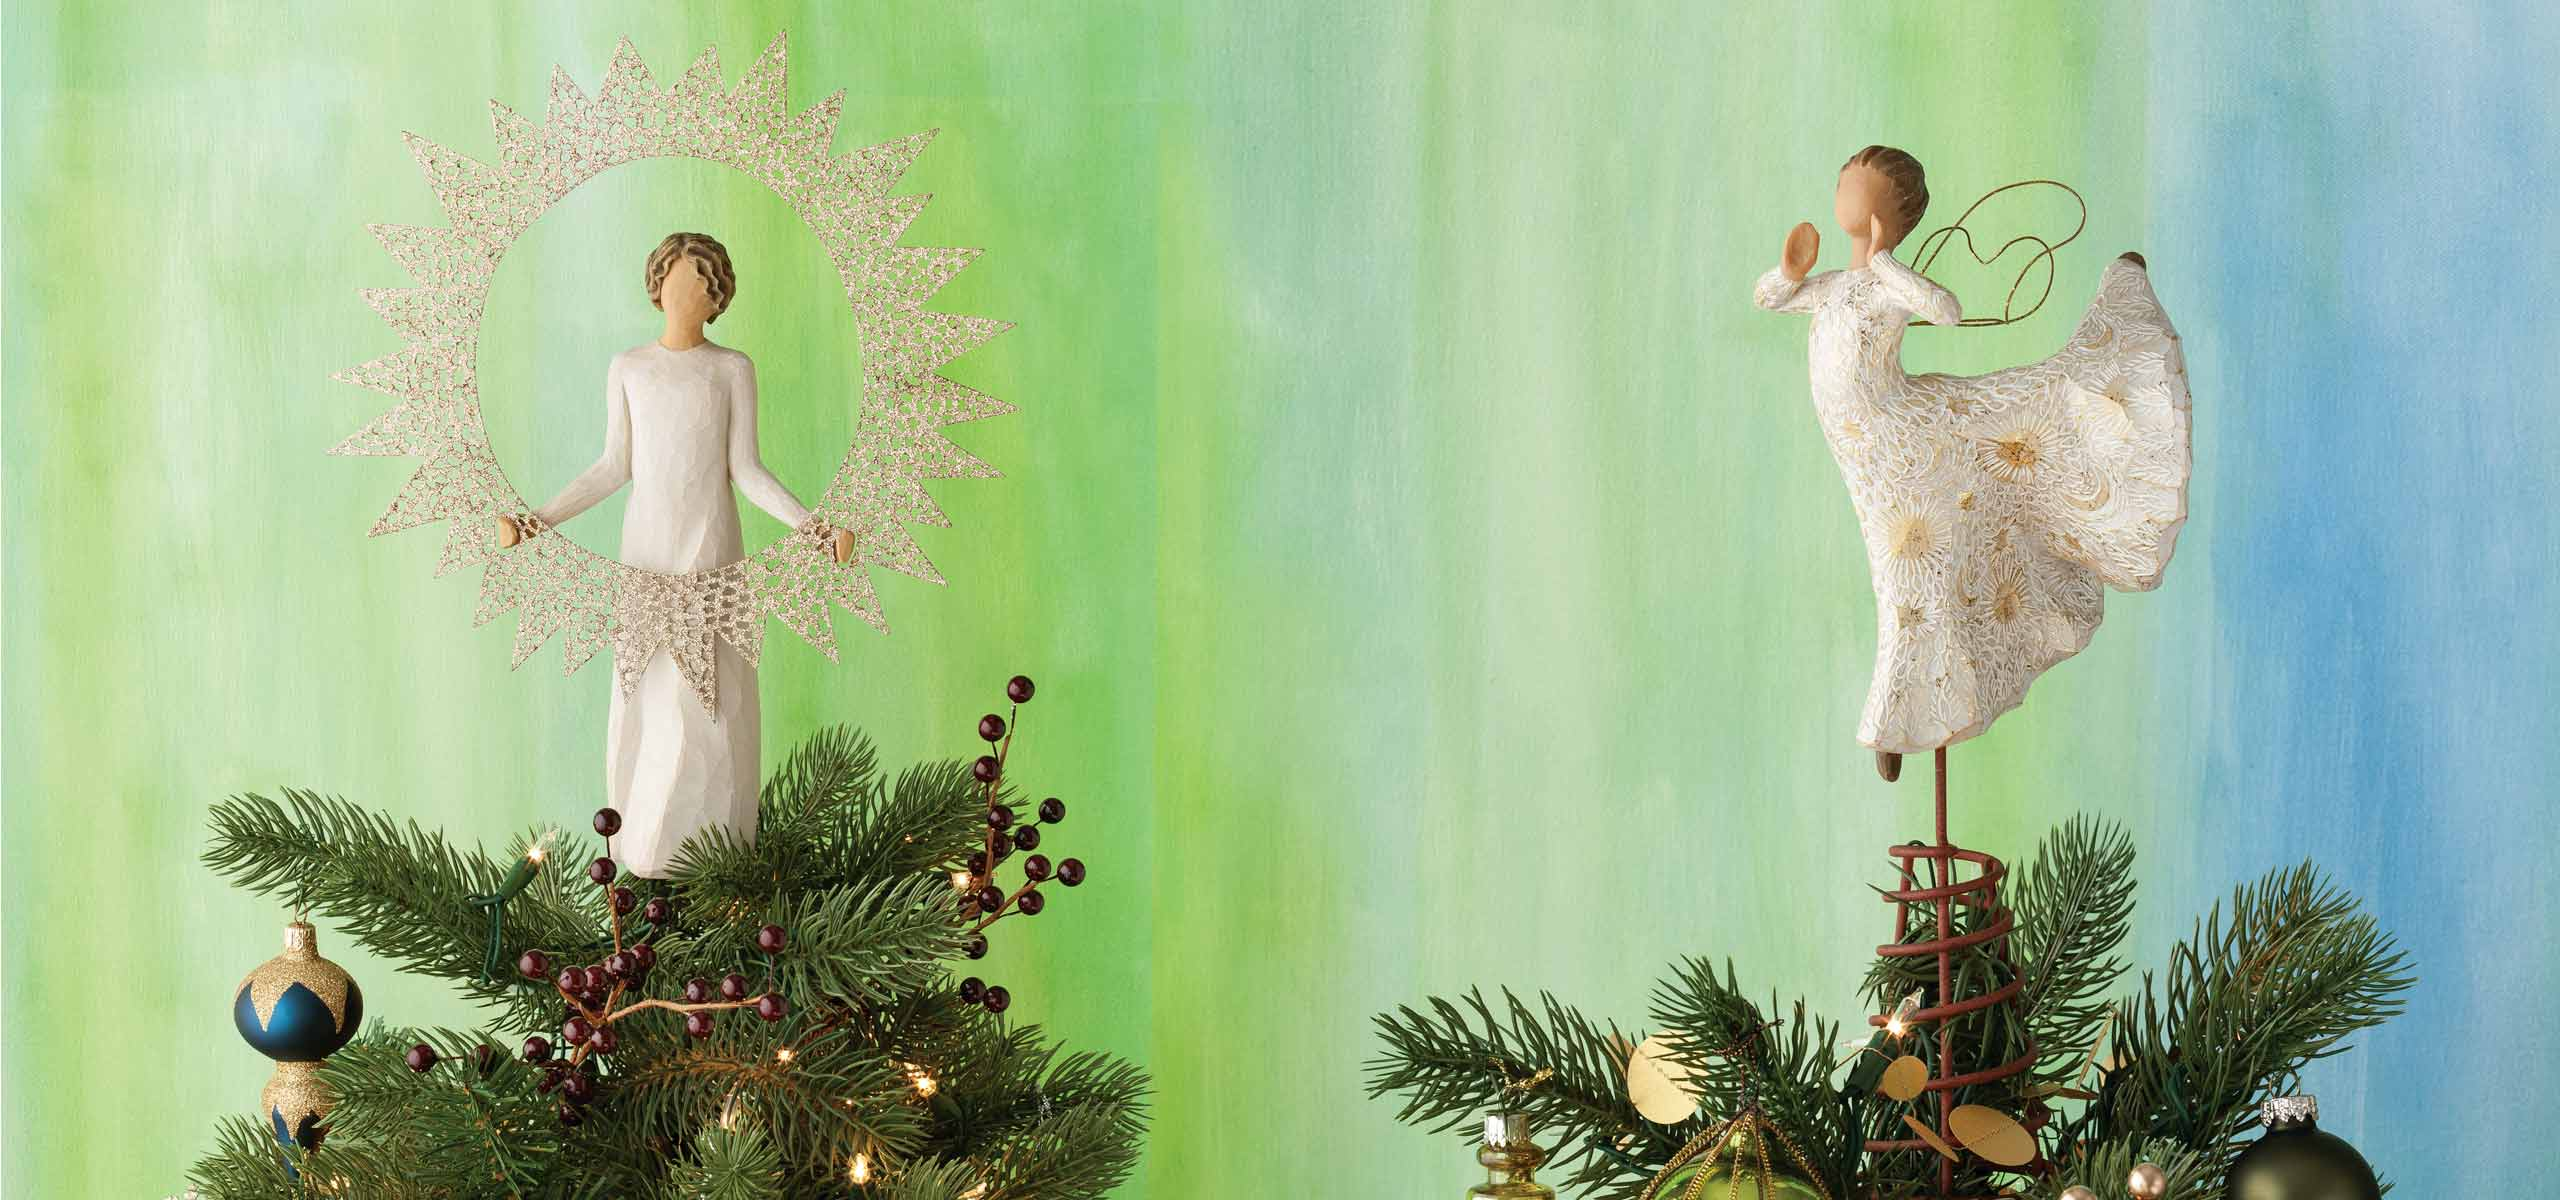 a picture of two tree toppers one is of an angel holding up a the sun as a star and the other of an angel standing on one foot dancing on top of a tree